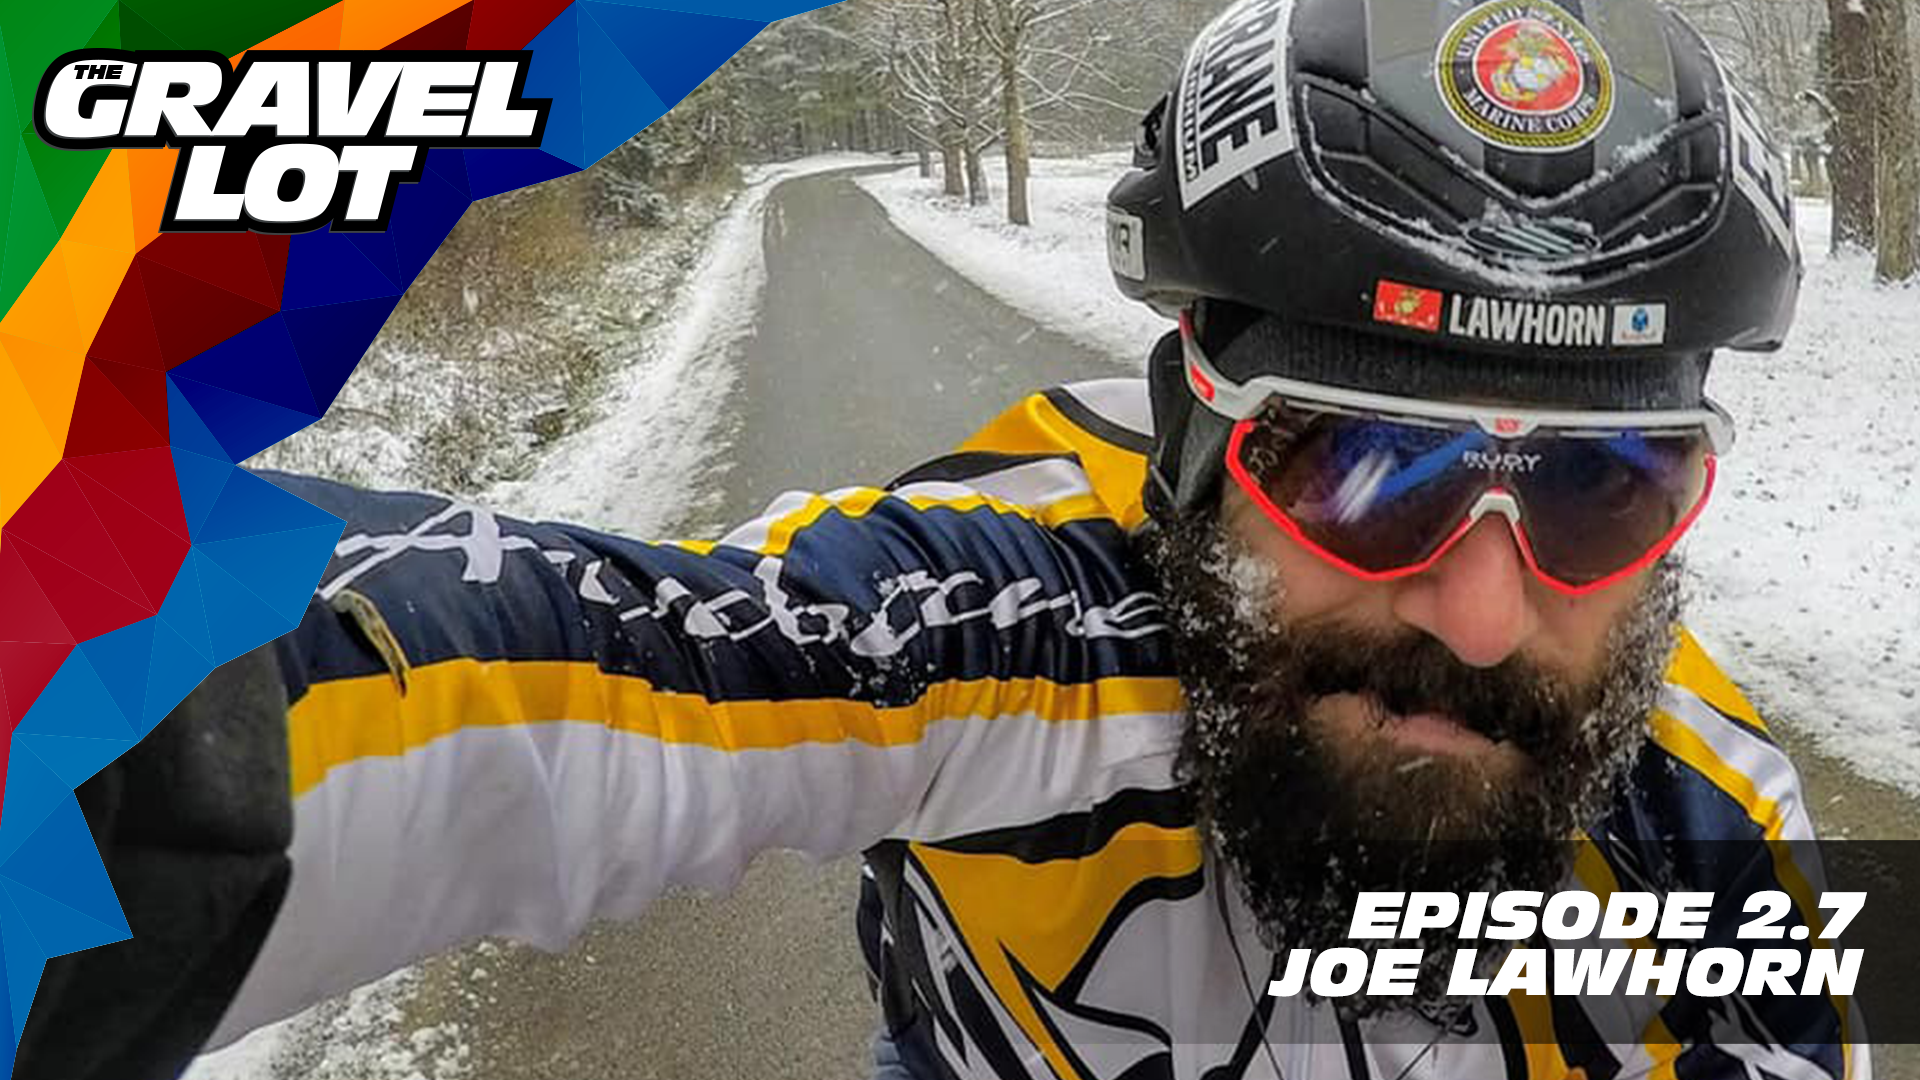 """Episode 59: He is a World-Record Holder, RAAM finisher, Marine, Husband, Father, and cyclist. So we try to find out what makes Joe Lawhorn tick, and find out how he used cycling to save his life and bring hope to an entire generation of Veterans.   Visit The Gravel Lot website for our latest podcast, Real Talk videos, Bonus Content, shop, social media, and everything in between.    Be Free Ride Bikes:    Save 50% on your next RoadID:    Handup Gloves: Use code """"PEBBLES"""" for 20% off EVERYTHING in store.    Noxgear: Use code """"PEBBLES"""" for 35% off any item.    Magas Law Firm:   Subscribe to The Gravel Lot on the  Wide Angle Podium Network and become a member TODAY!"""